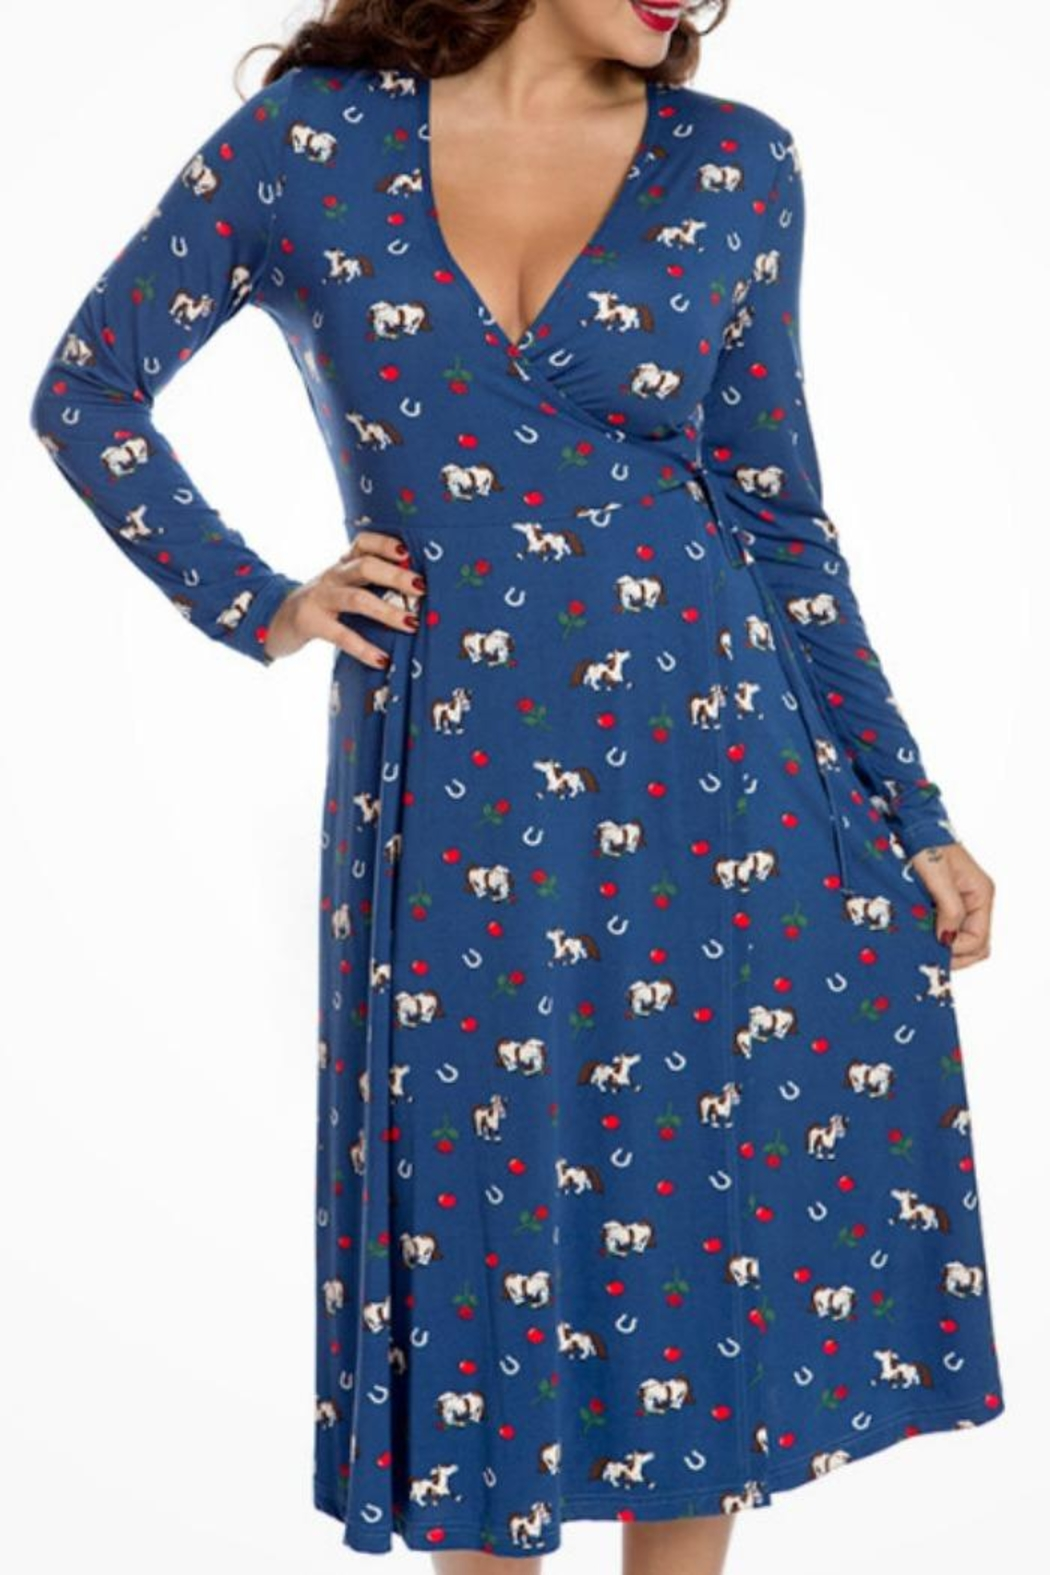 Lindy Bop Lucky Horse Dress - Front Full Image